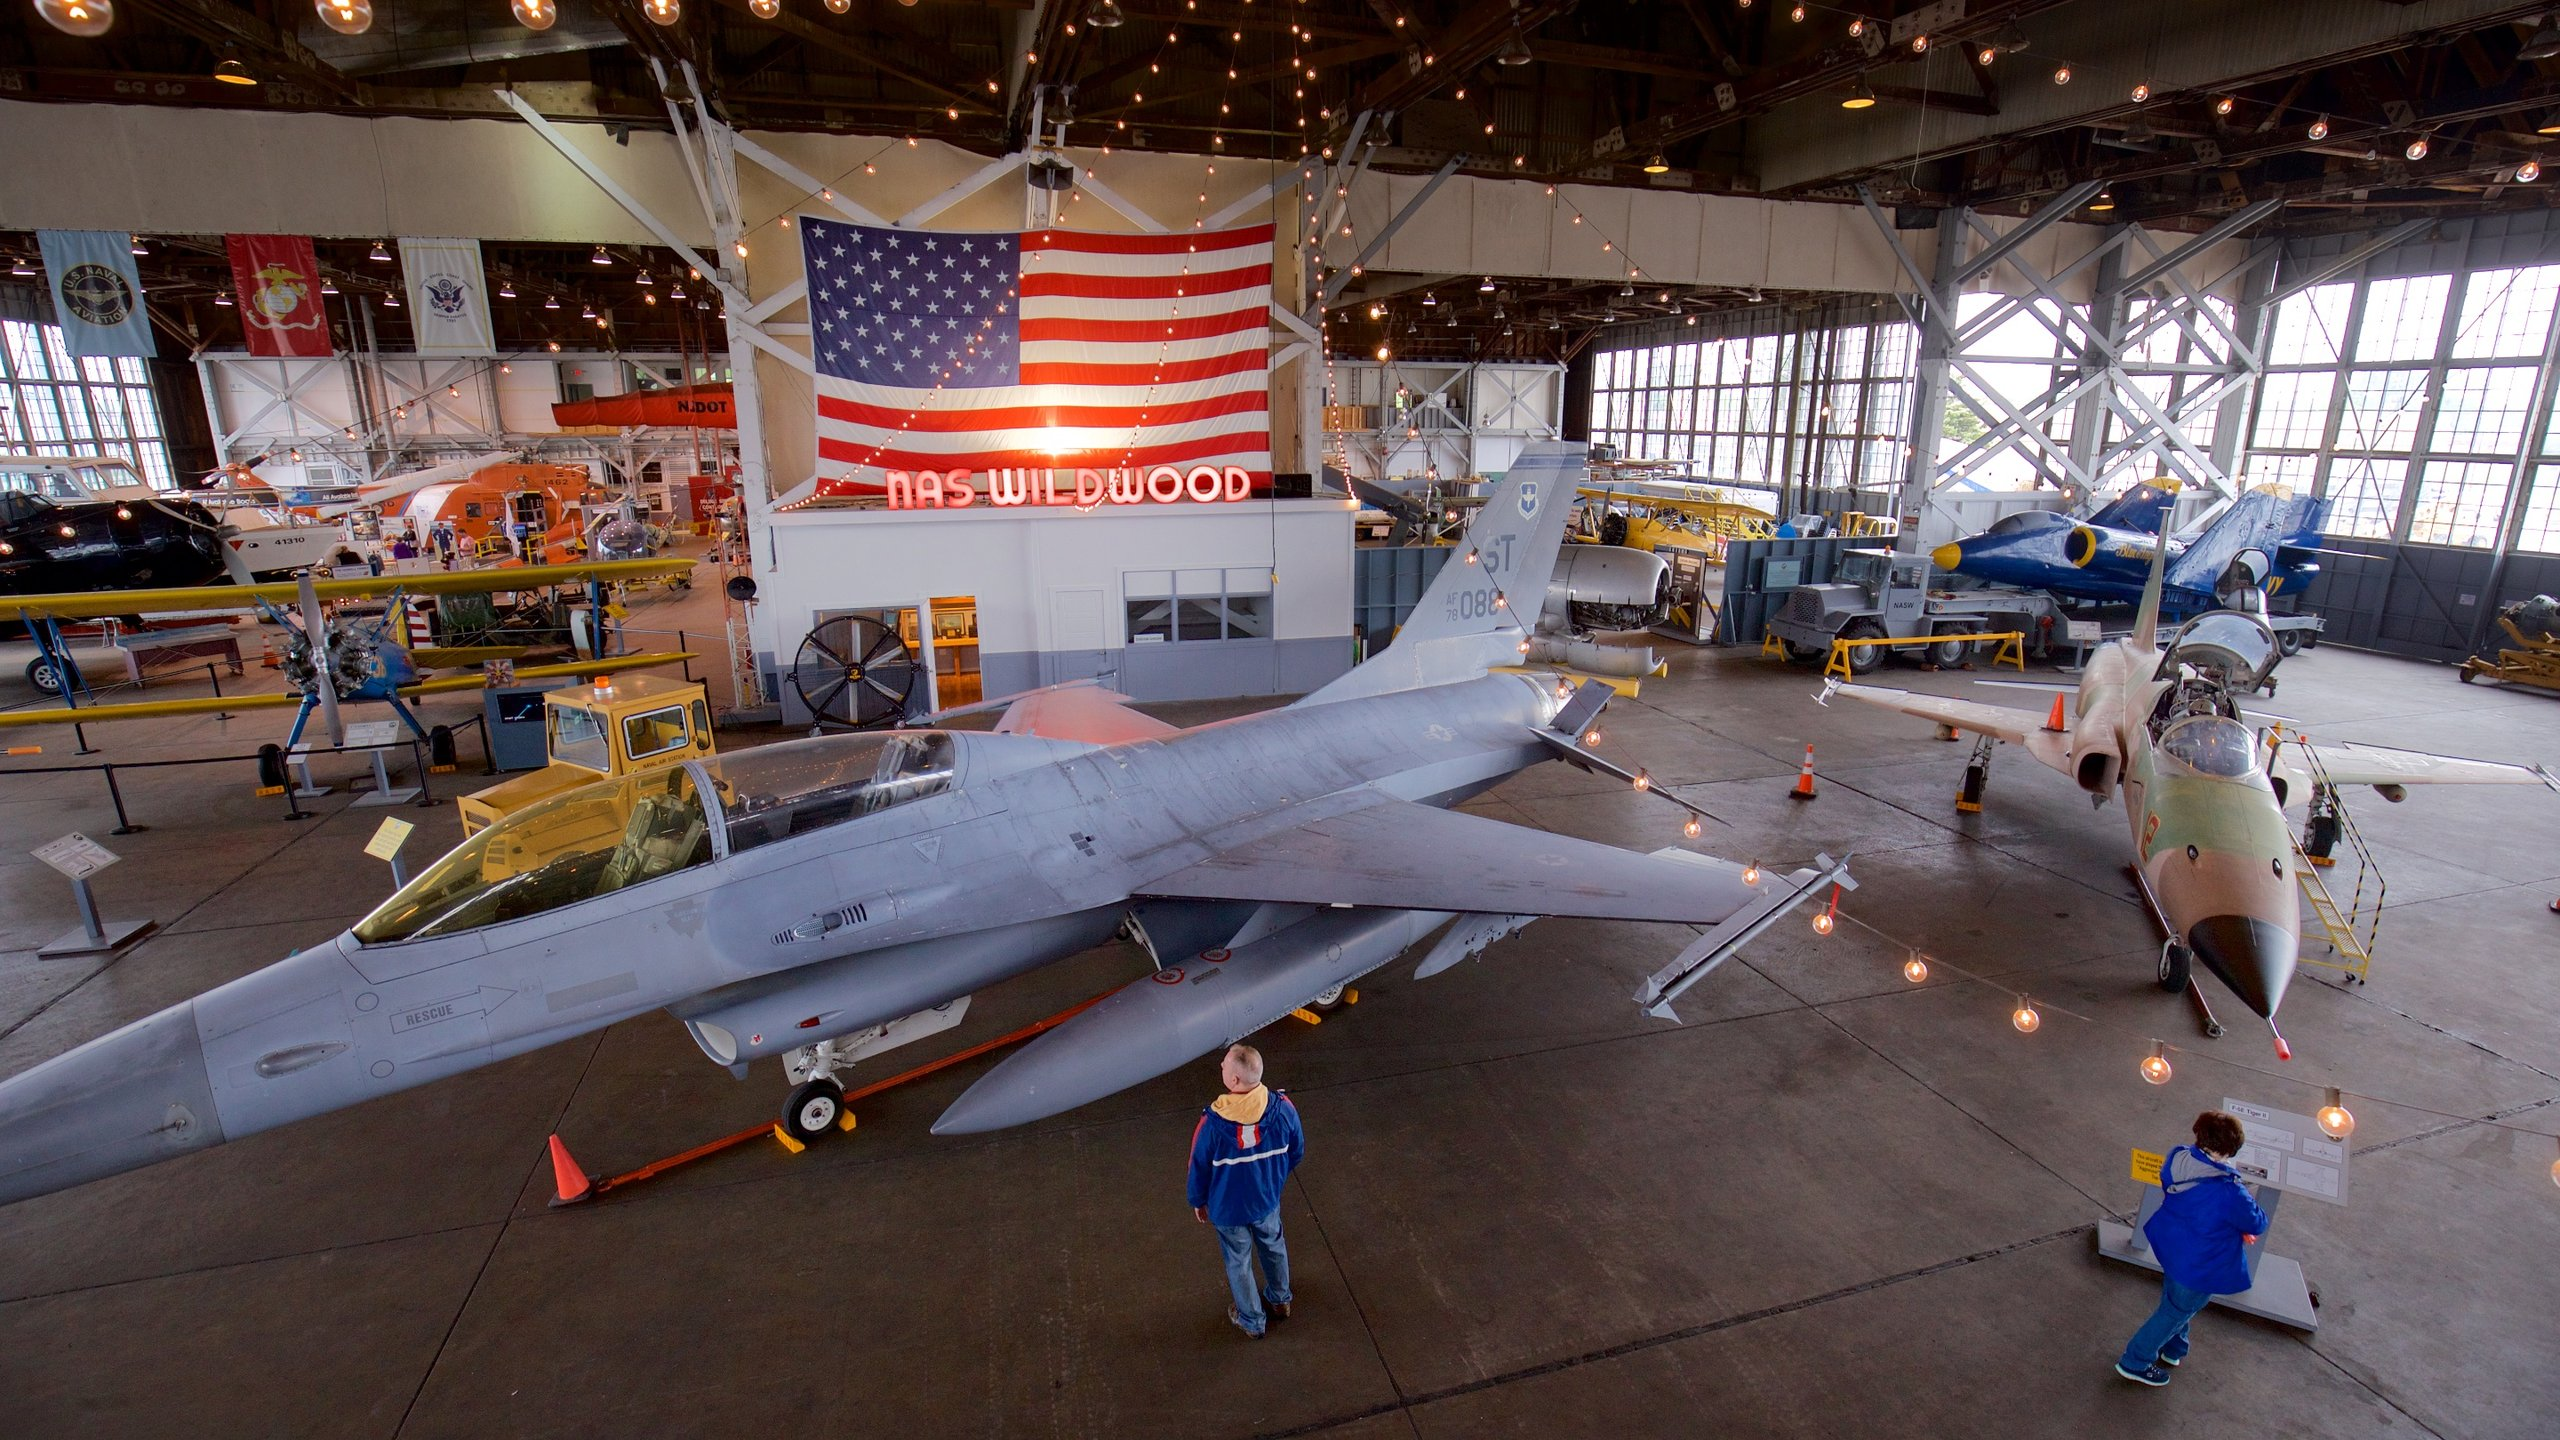 Naval Air Station Wildwood Aviation Museum, Lower Township, New Jersey, United States of America